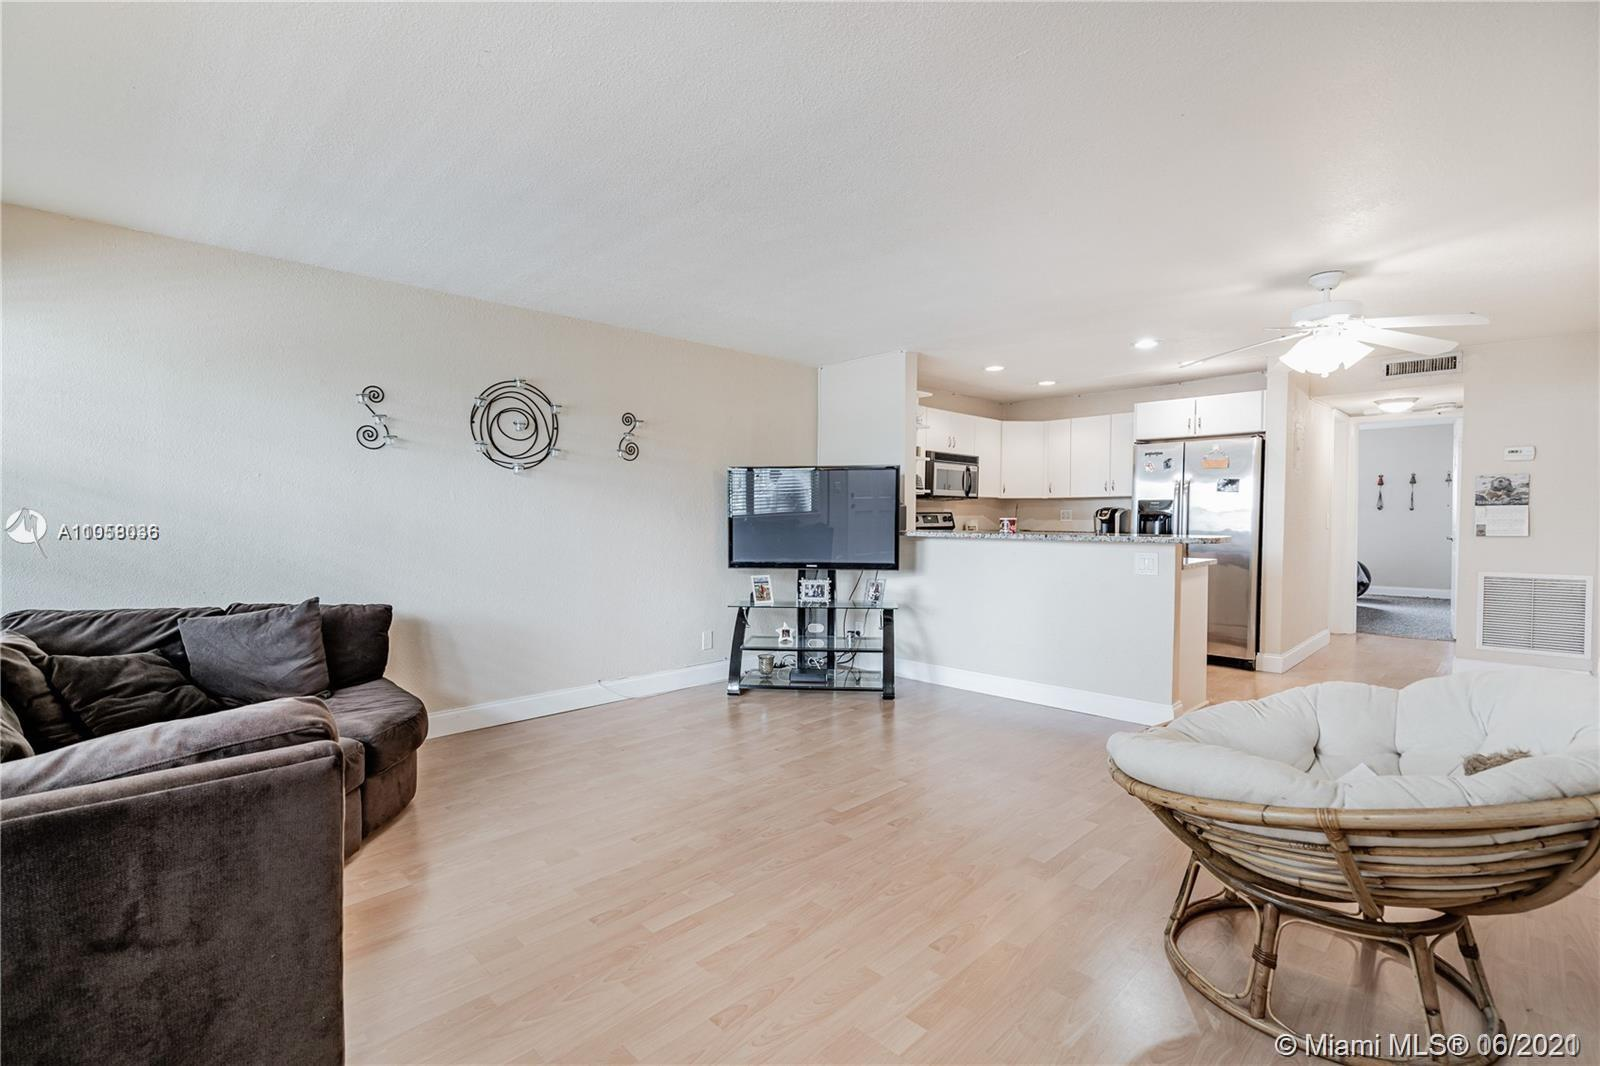 Spacious 1/1 in Ft Lauderdale close to the beach and restaurants